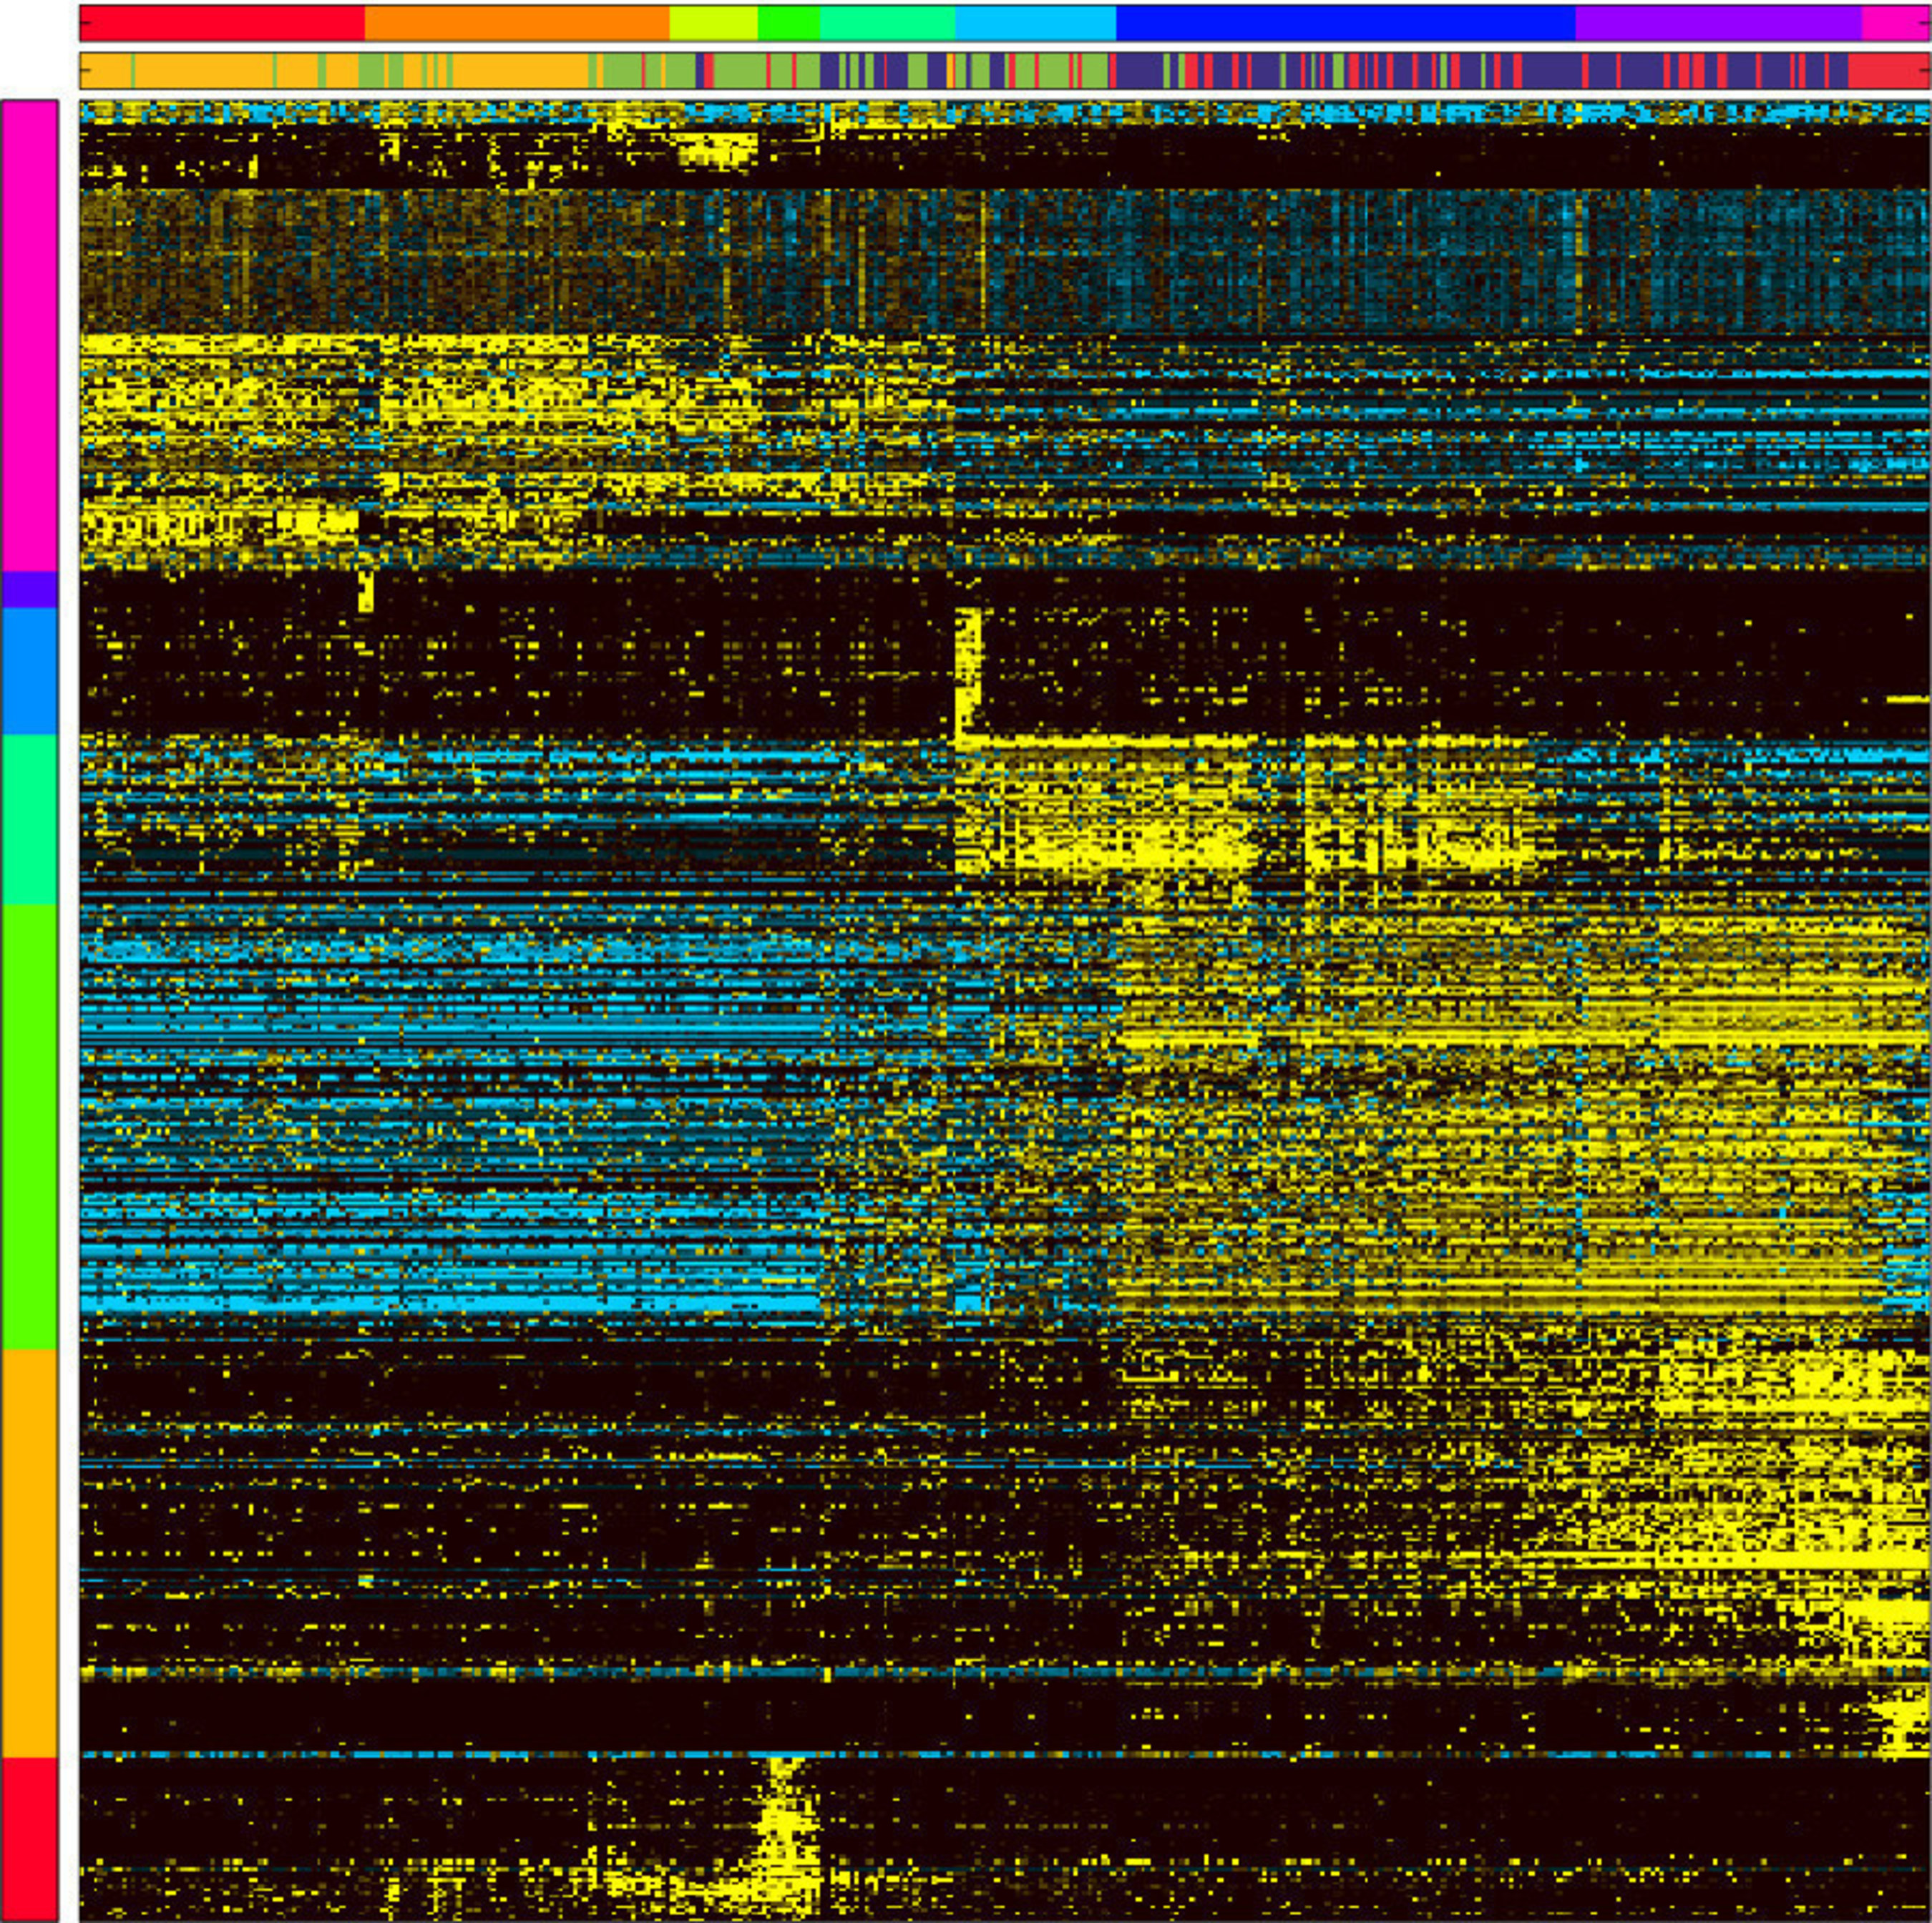 Order from Chaos - With a jumble of colors resembling abstract art, this array shows the expression of genes (horizontal rows) that are associated with different types of bone marrow progenitor cells (vertical columns). Part of a study published Aug. 31 by Nature, the image was produced from a software program called Iterative Clustering and Guide-Gene Selection, developed by researchers at Cincinnati Children's. It gives scientists an unbiased way to identify developing cells in various intermediate states and discover new cellular intermediates. Yellow indicates highly expressed genes in particular cells, while blue indicates low or no expression. The study addresses a fundamental question of developmental biology - the nature of intermediate cell states and the regulatory gene networks that cause cell-type specification.